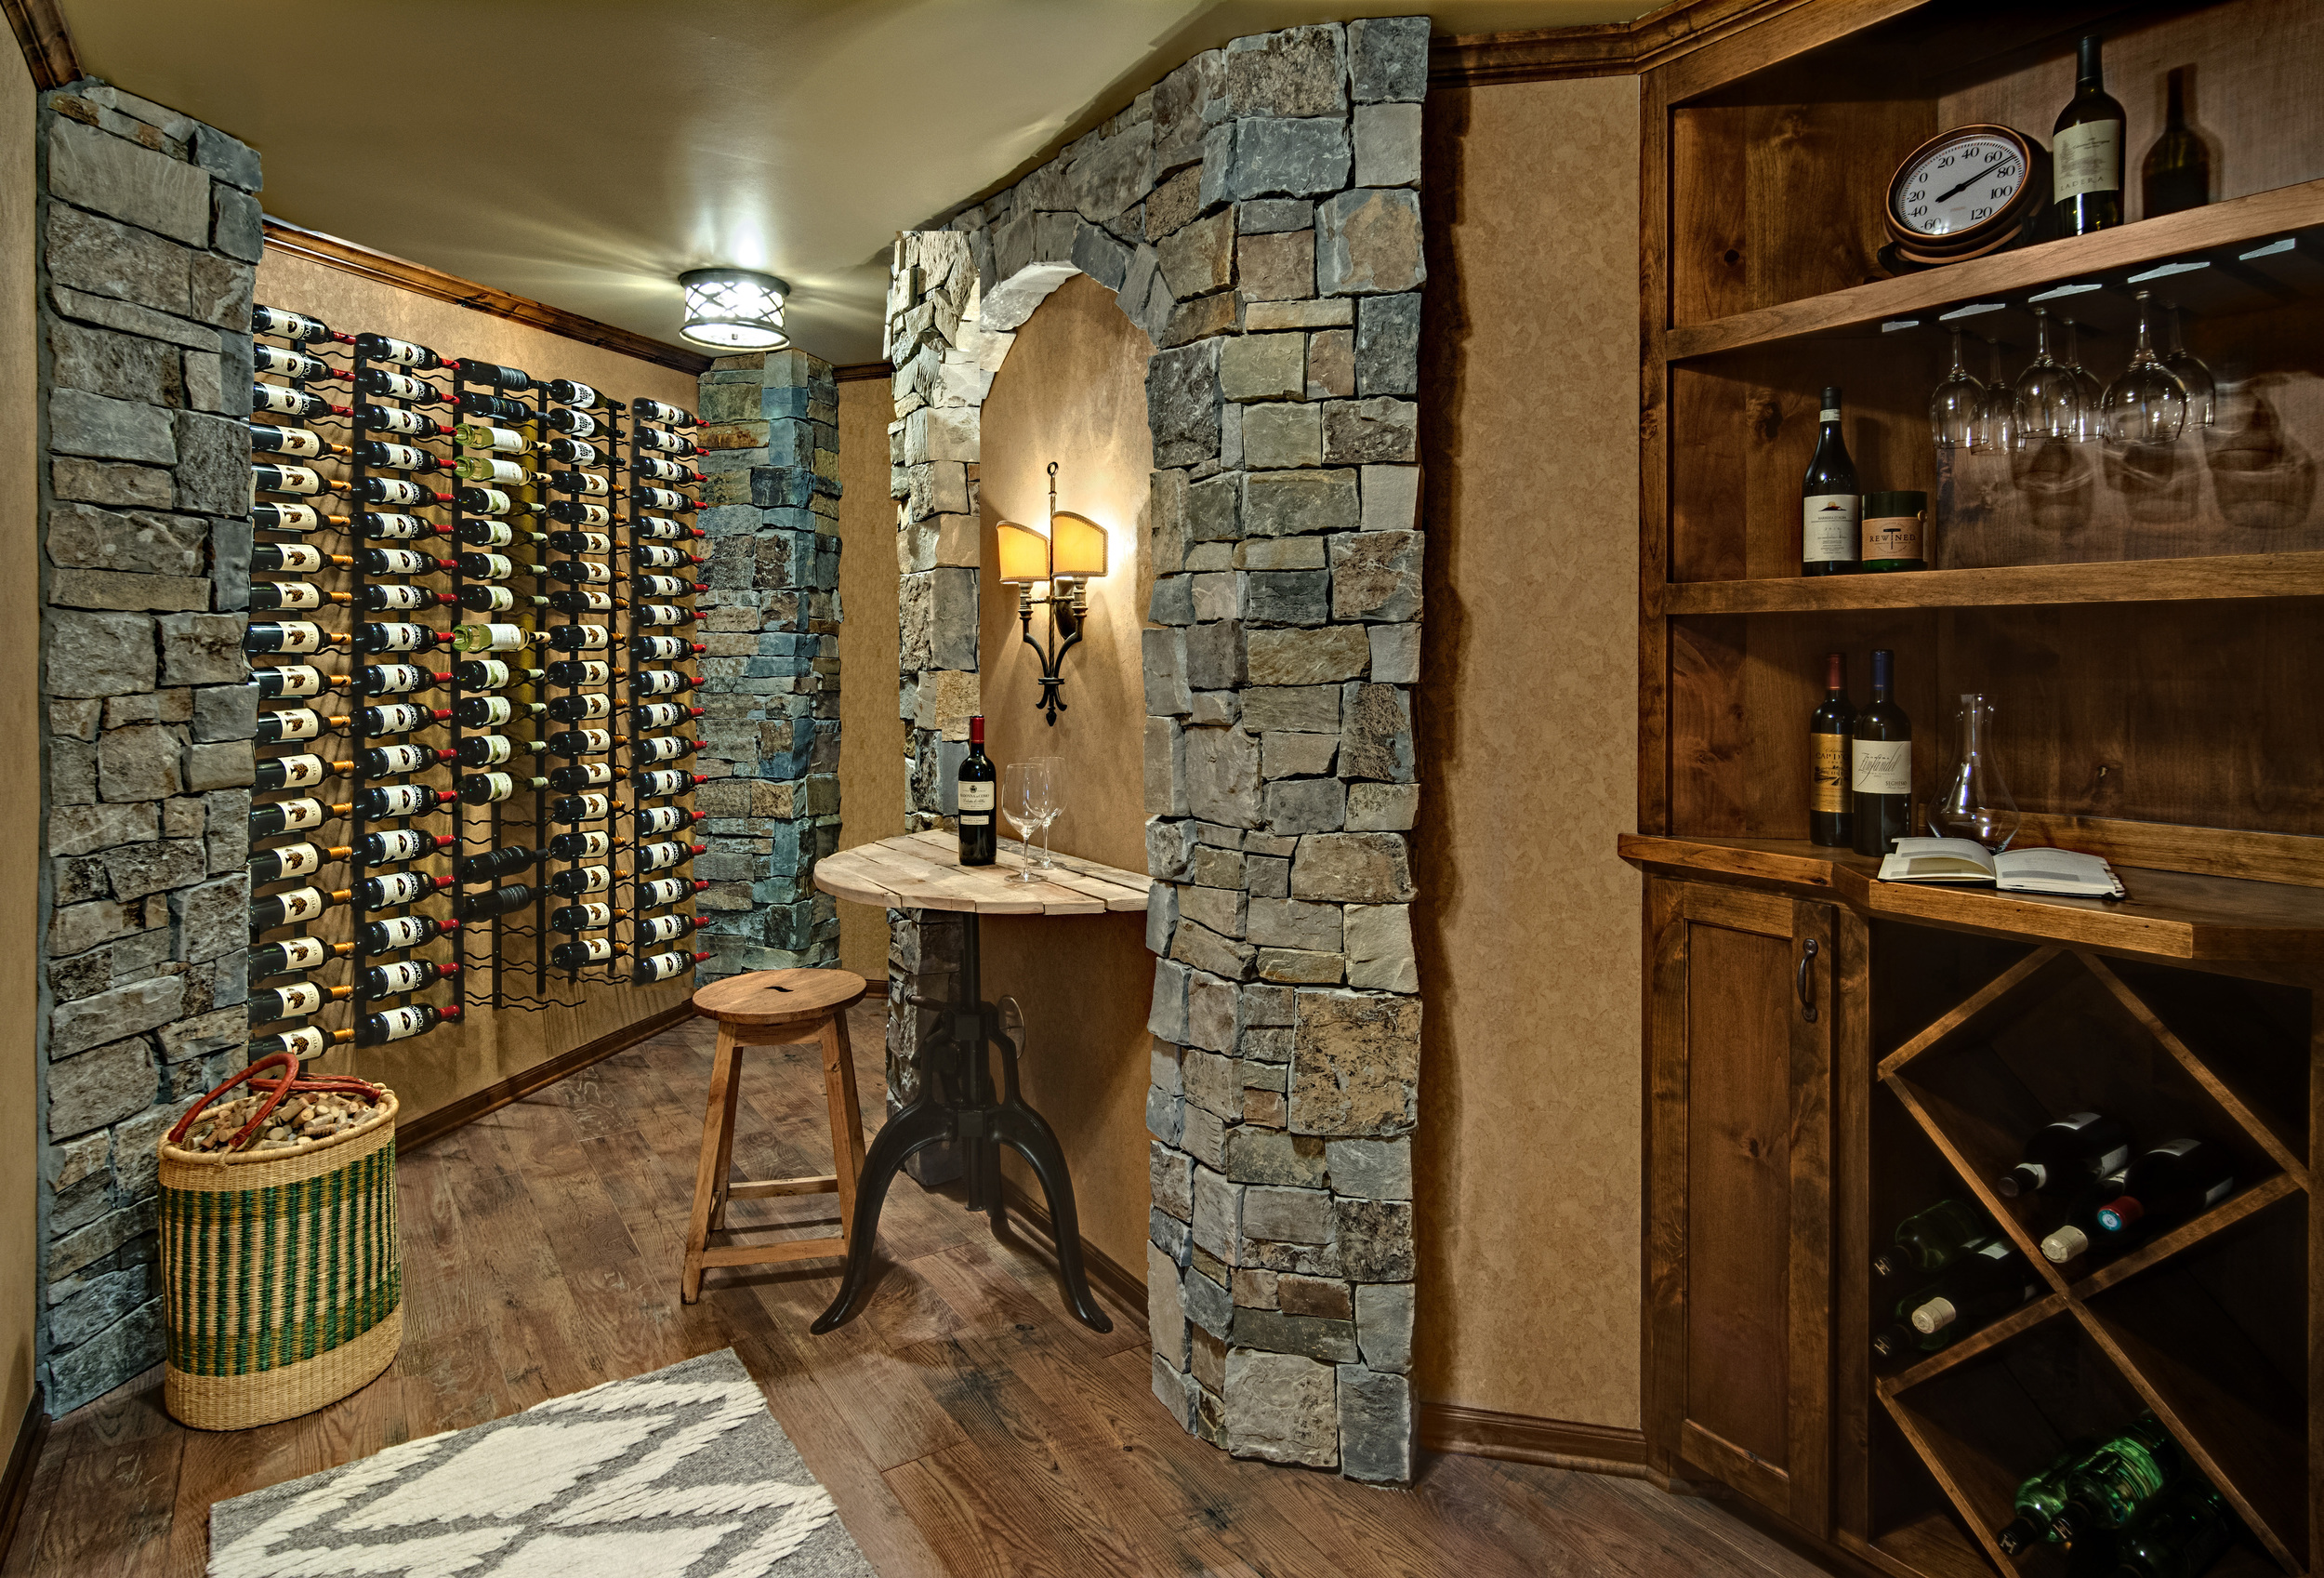 Wine Room Remodel  We are pleased to have our wine room remodel featured in the  Star Tribune . Previously, this space was an unfinished storage space. Now, the homeowners have a room that is dedicated to their passion and hobby and connects with the living room located just off of the wine room..